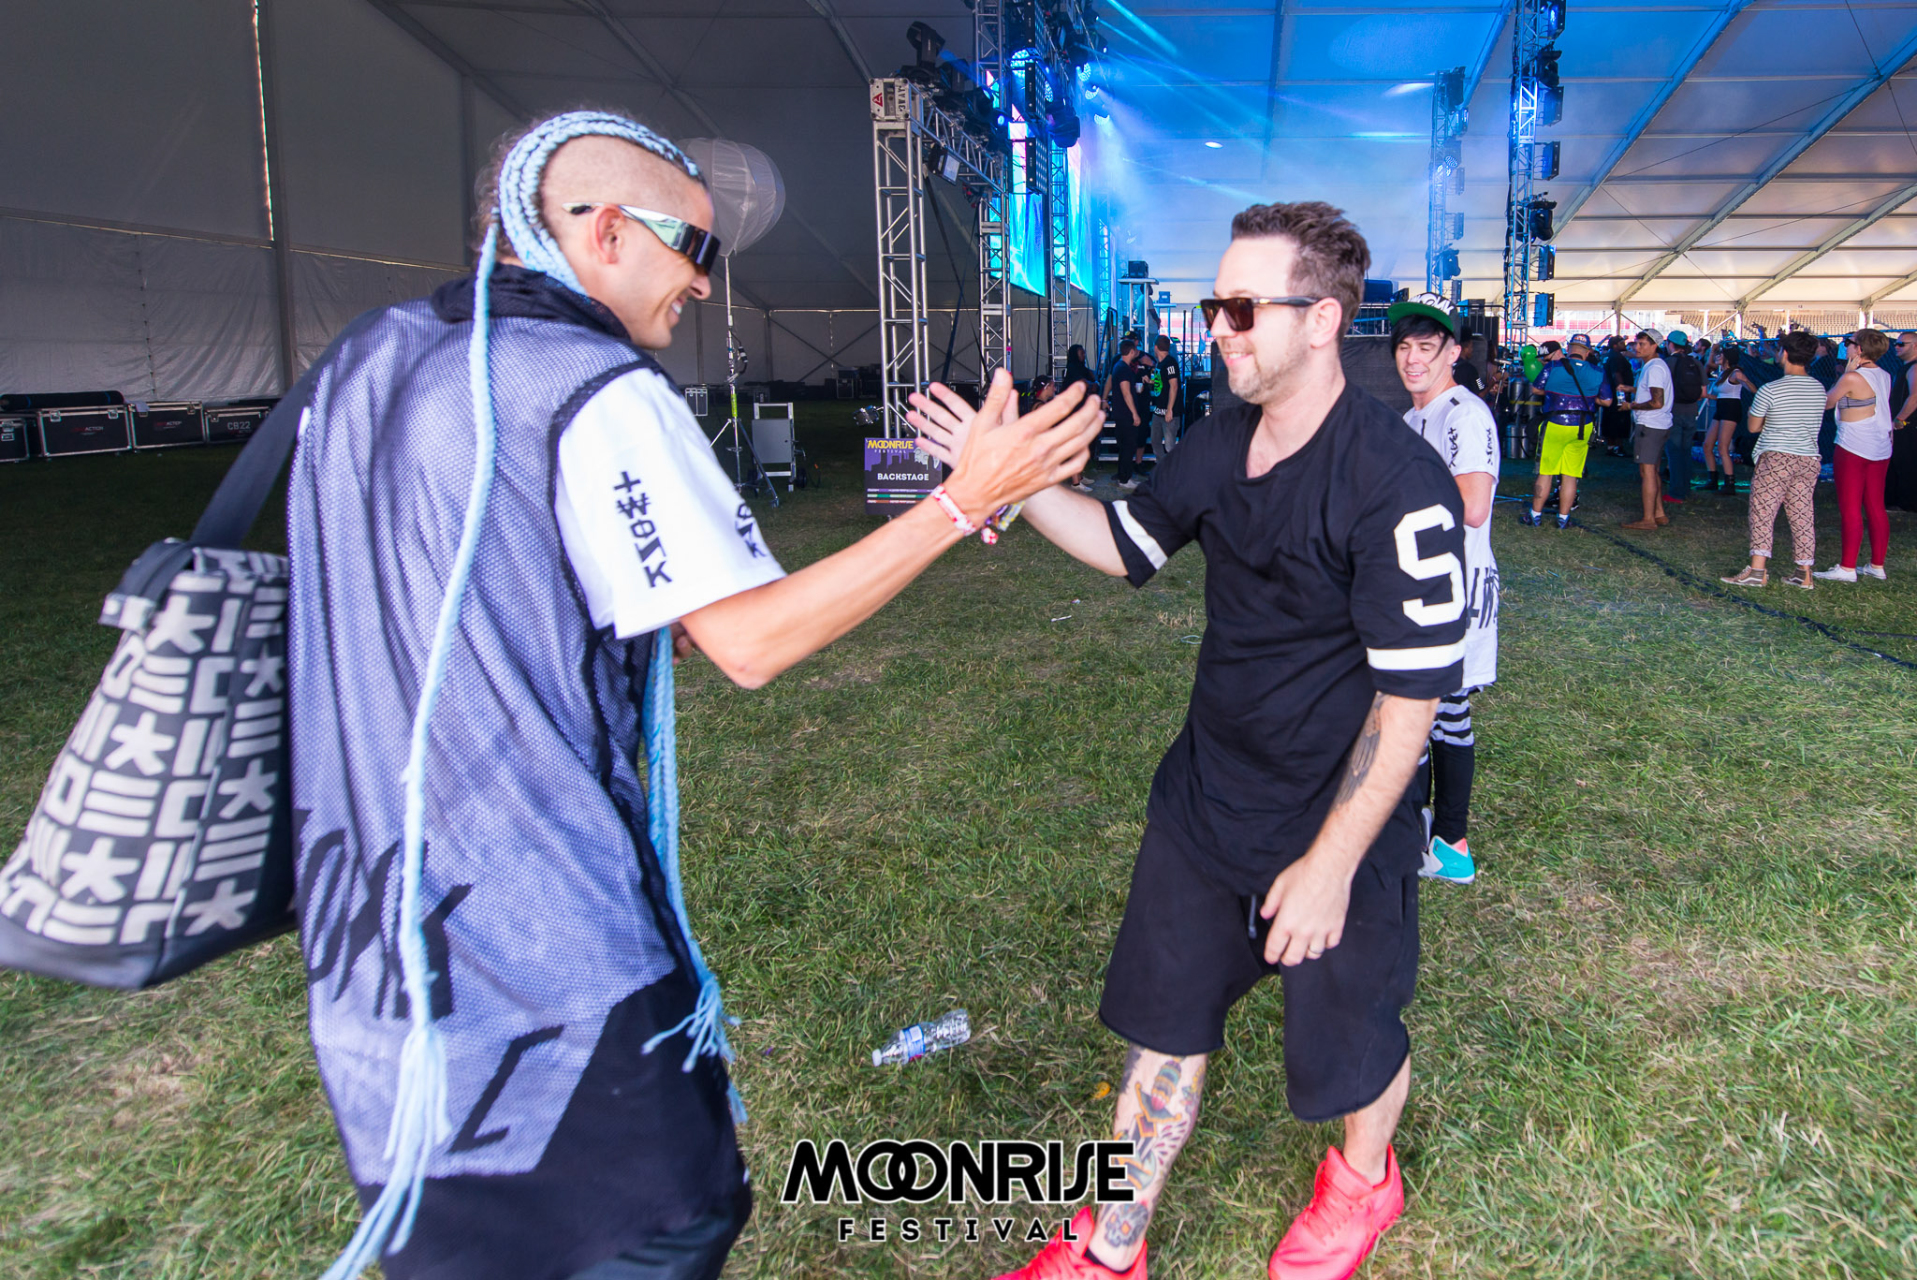 Moonrise_day2-43